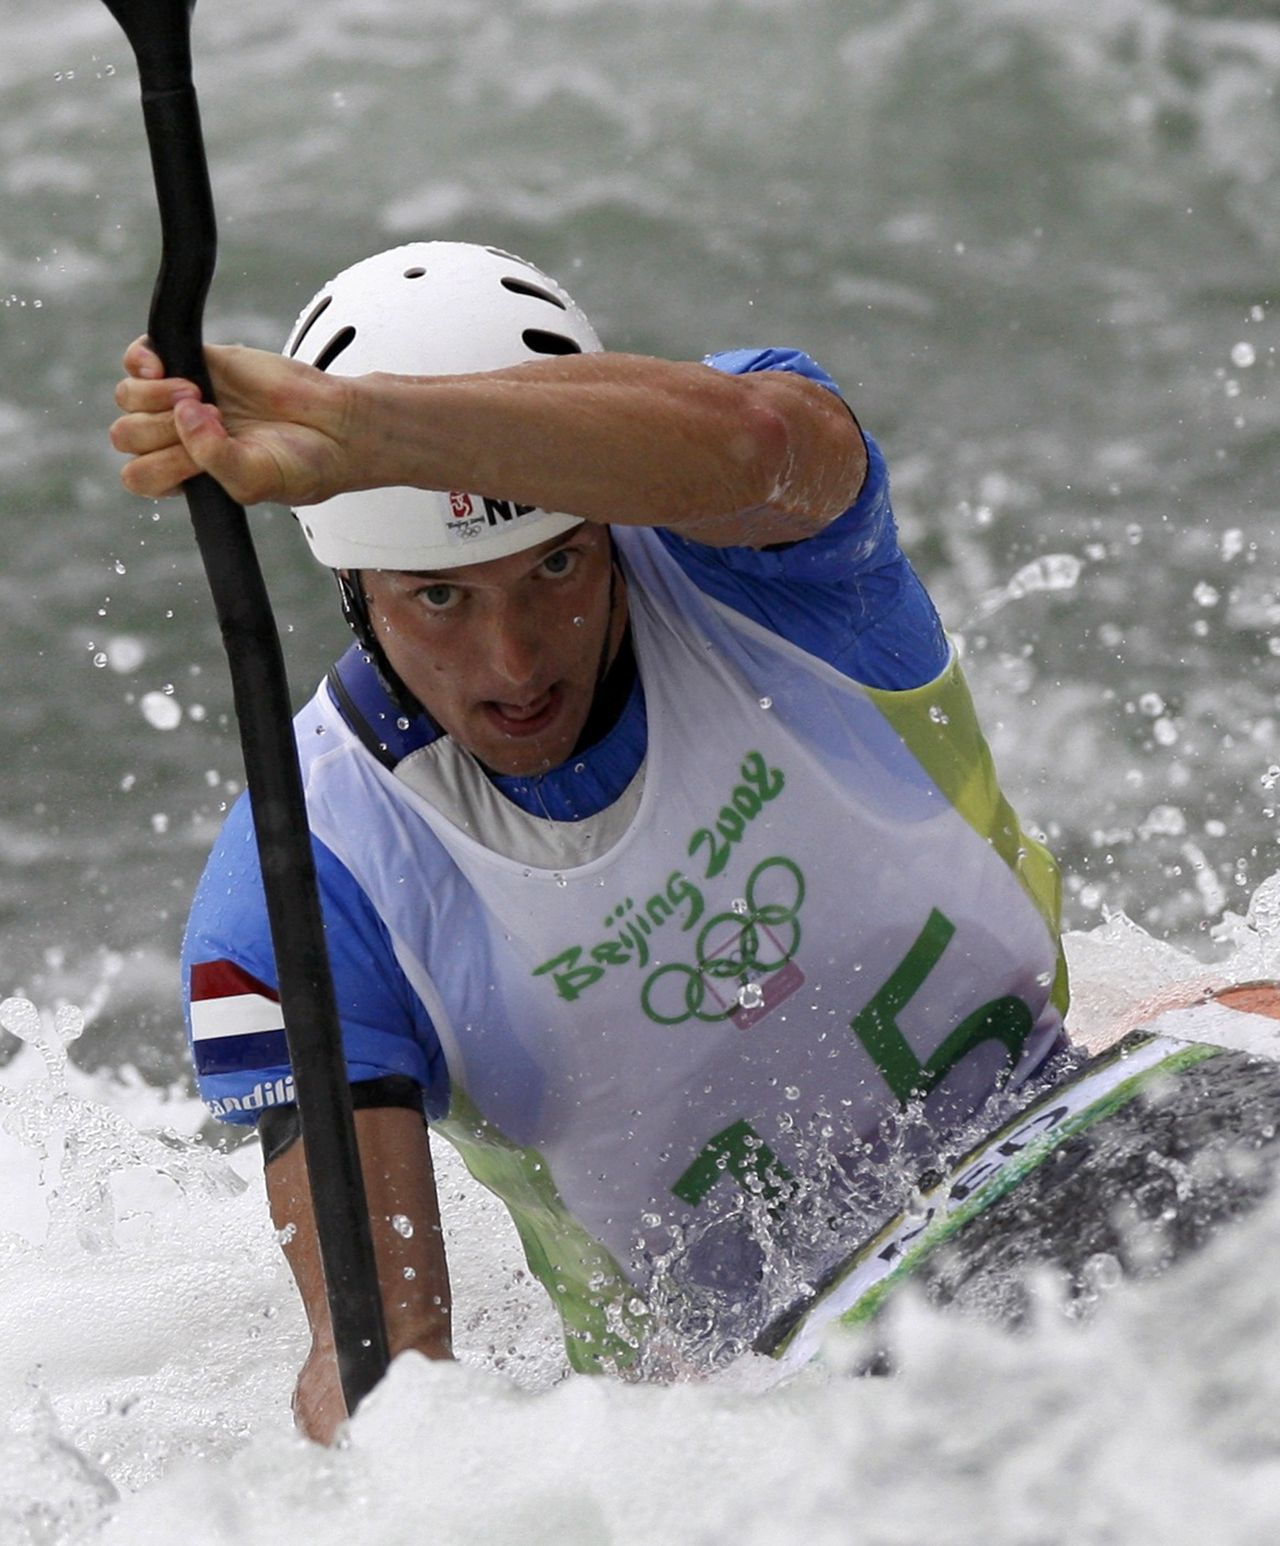 Robert Bouten of the Netherlands paddles during the first run of his men's kayak (K1) heats at the Beijing 2008 Olympic Games August 11, 2008. REUTERS/Darren Whiteside (CHINA)